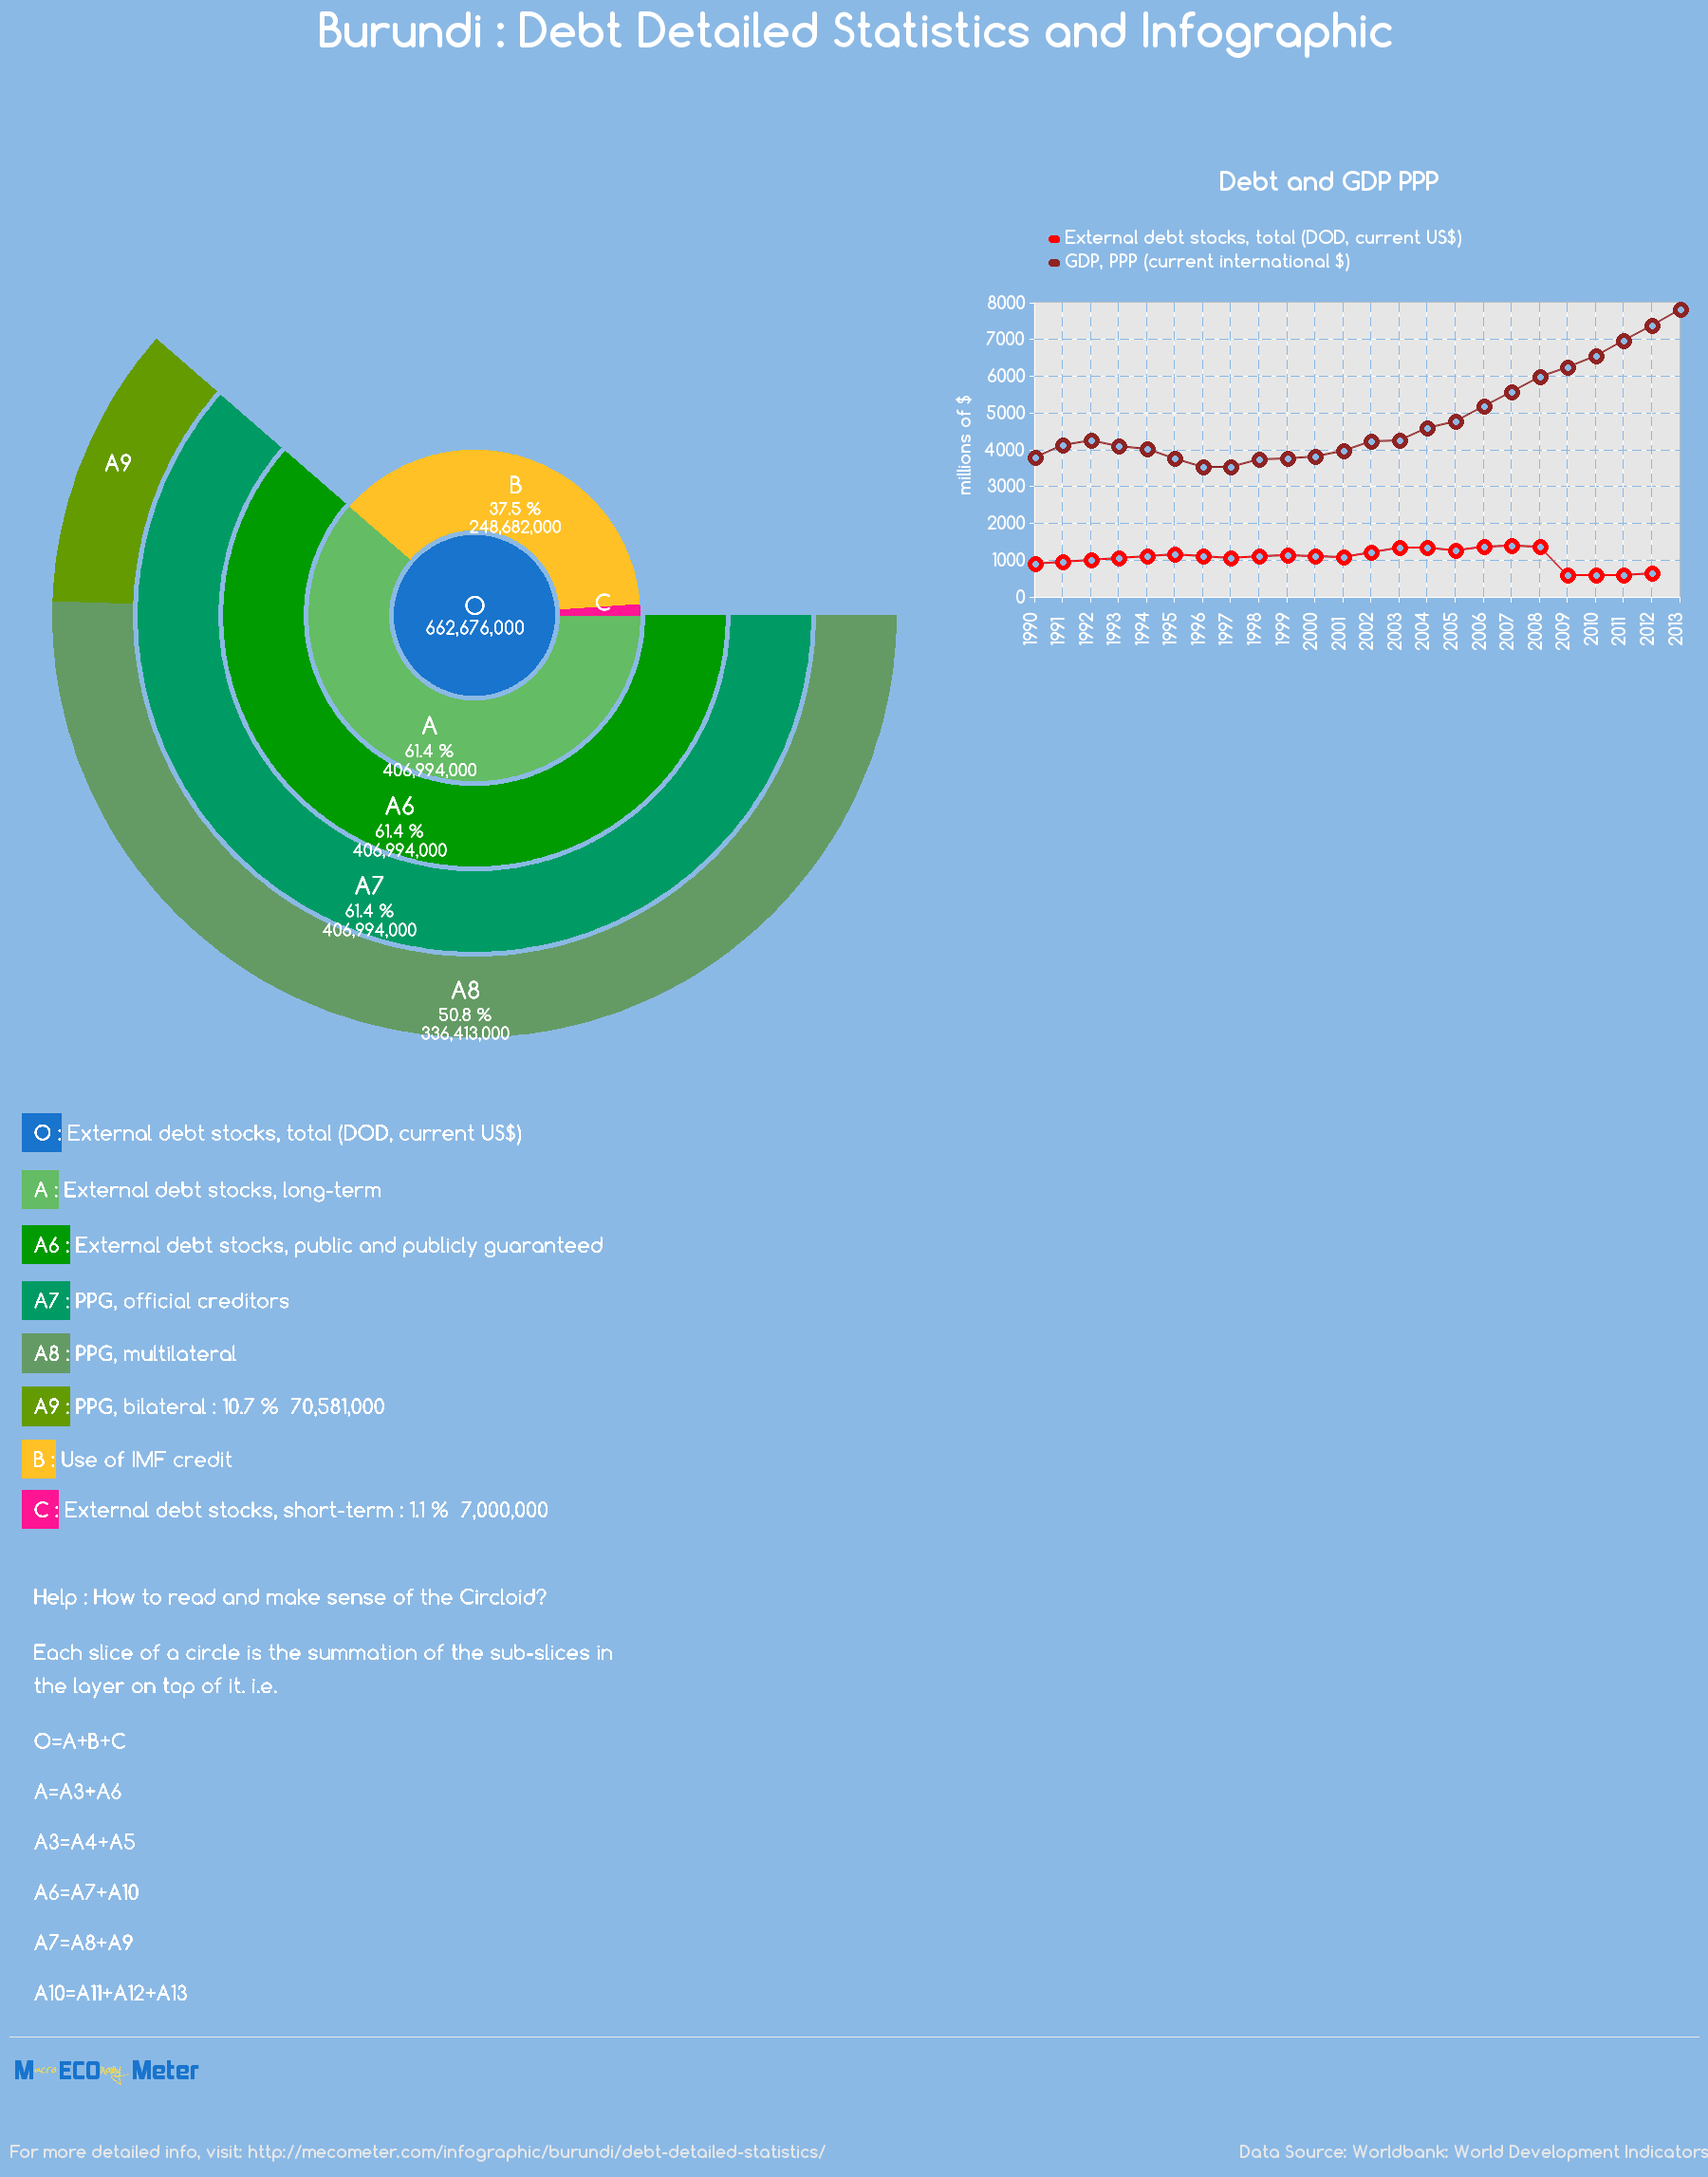 Burundi : Debt Detailed Statistics and Infographic